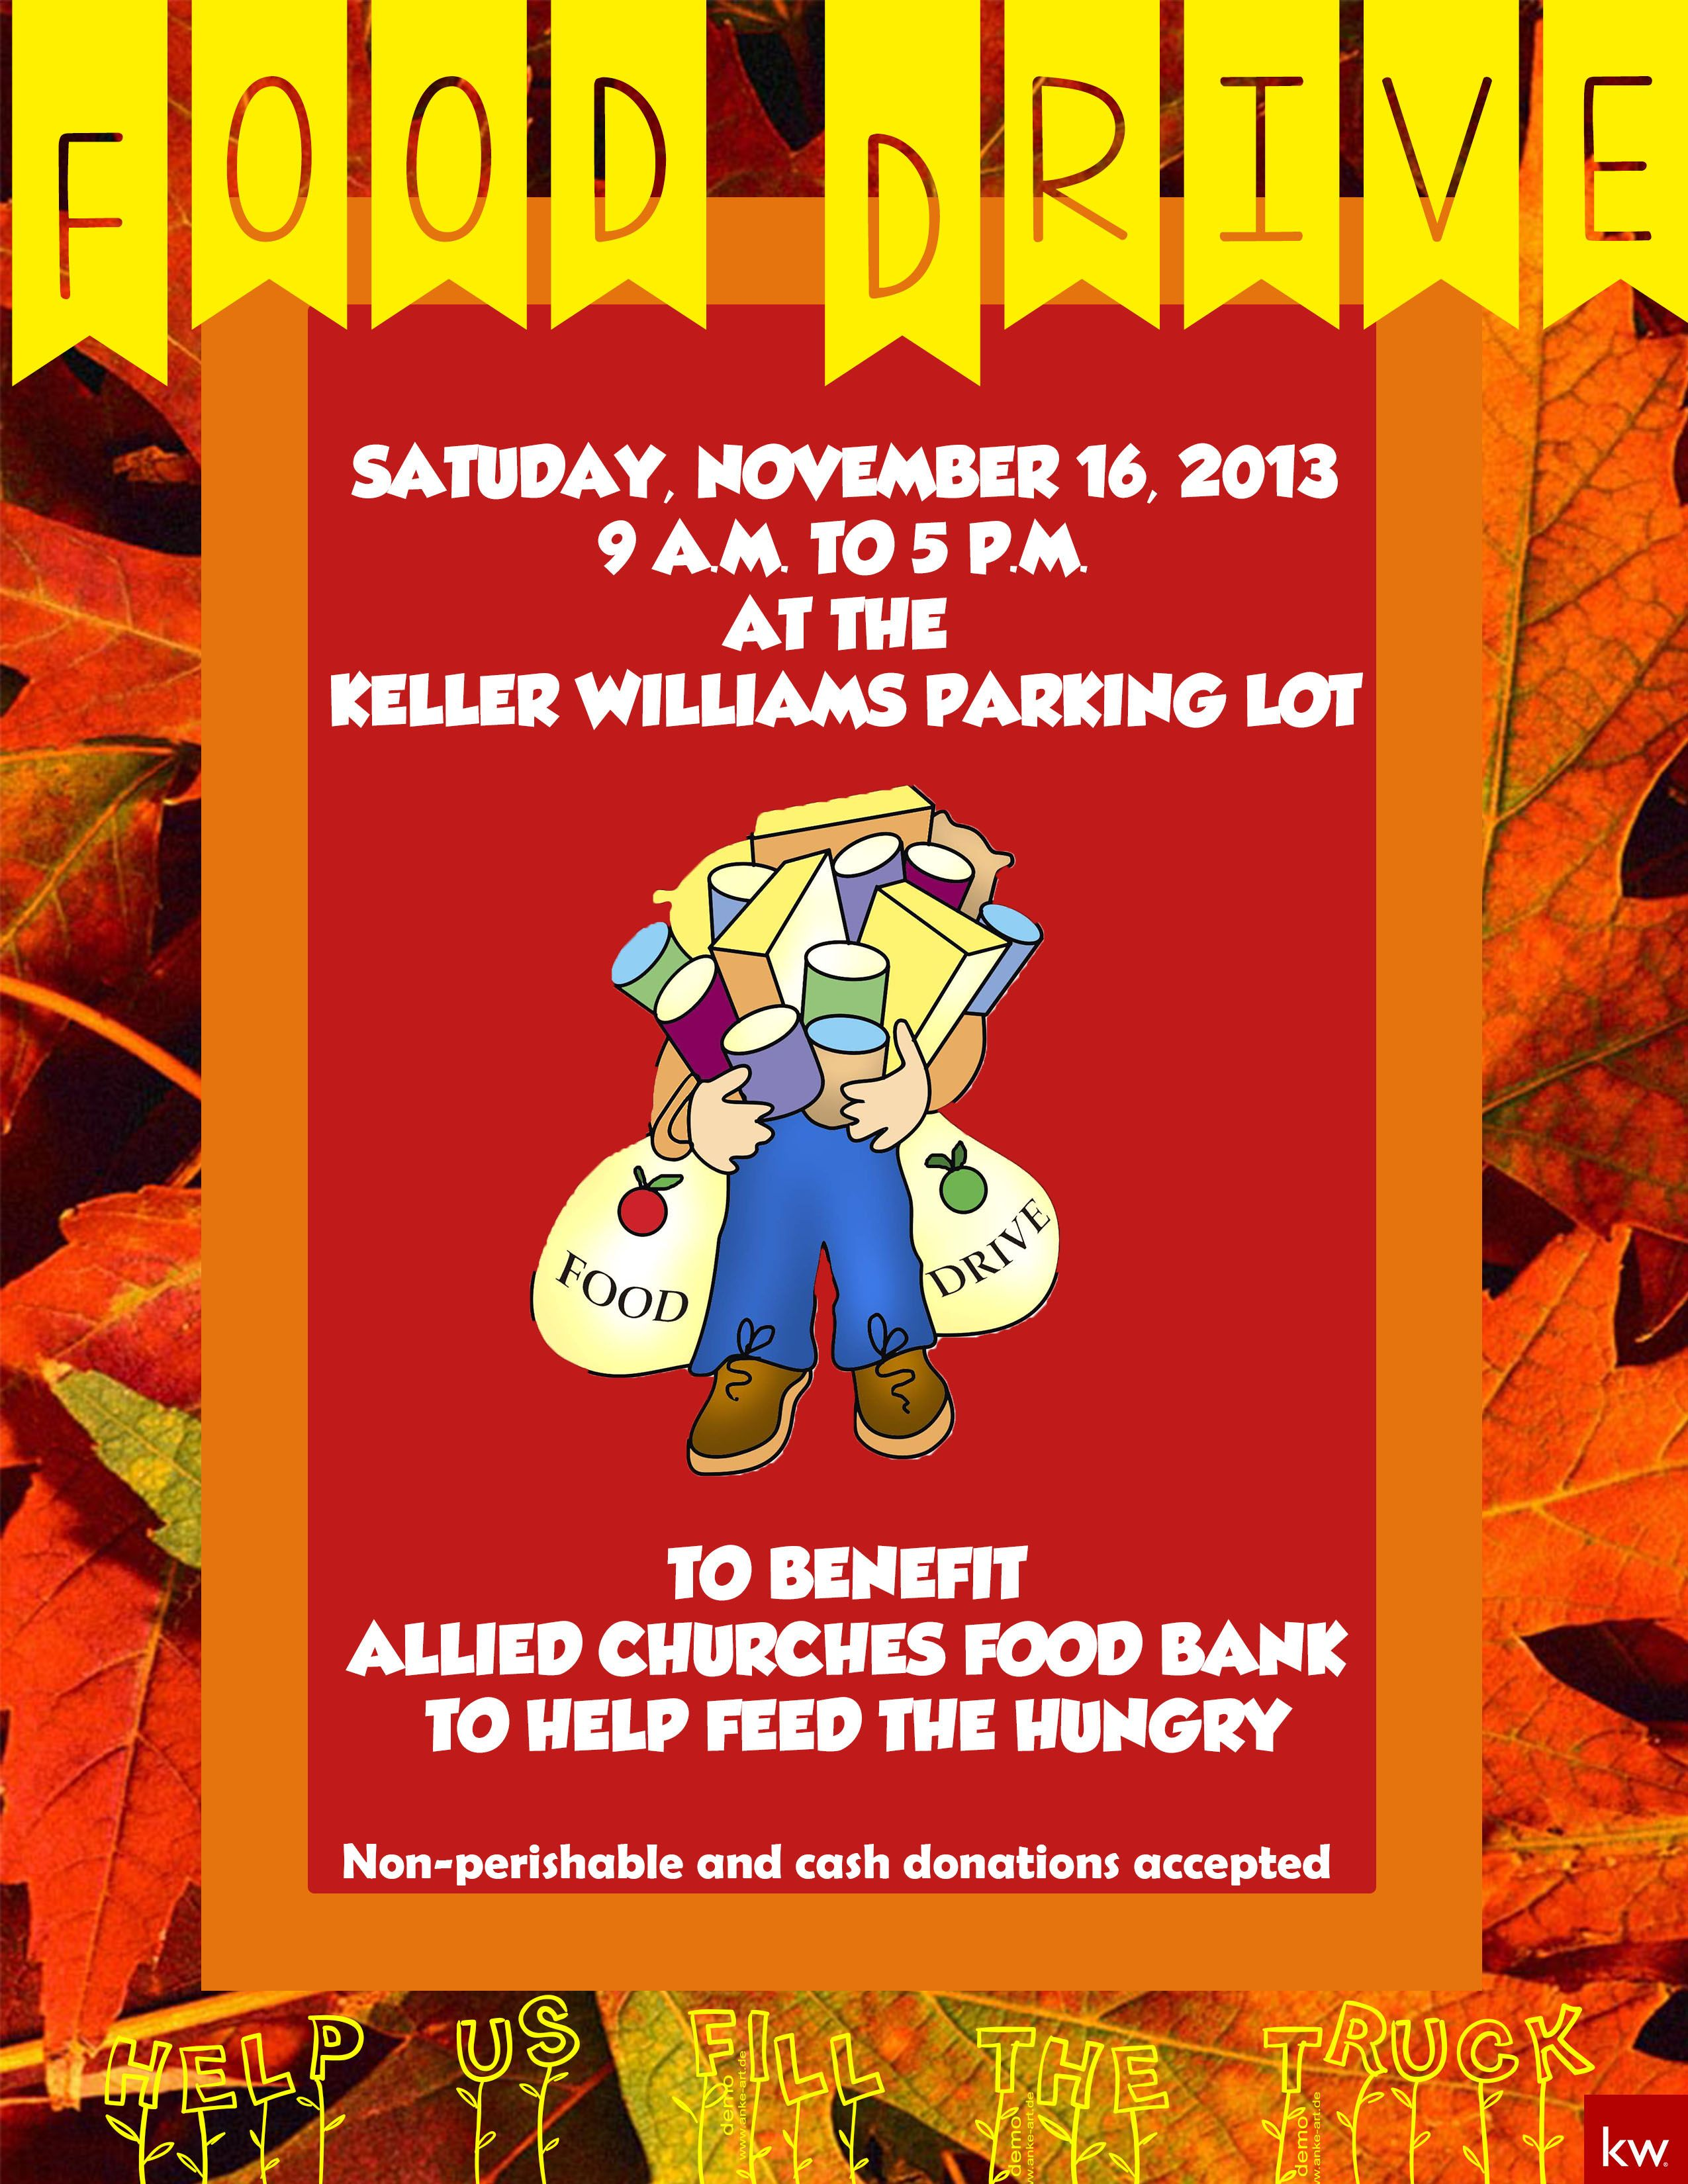 Support The Allied Churches Food Pantry On Saturday